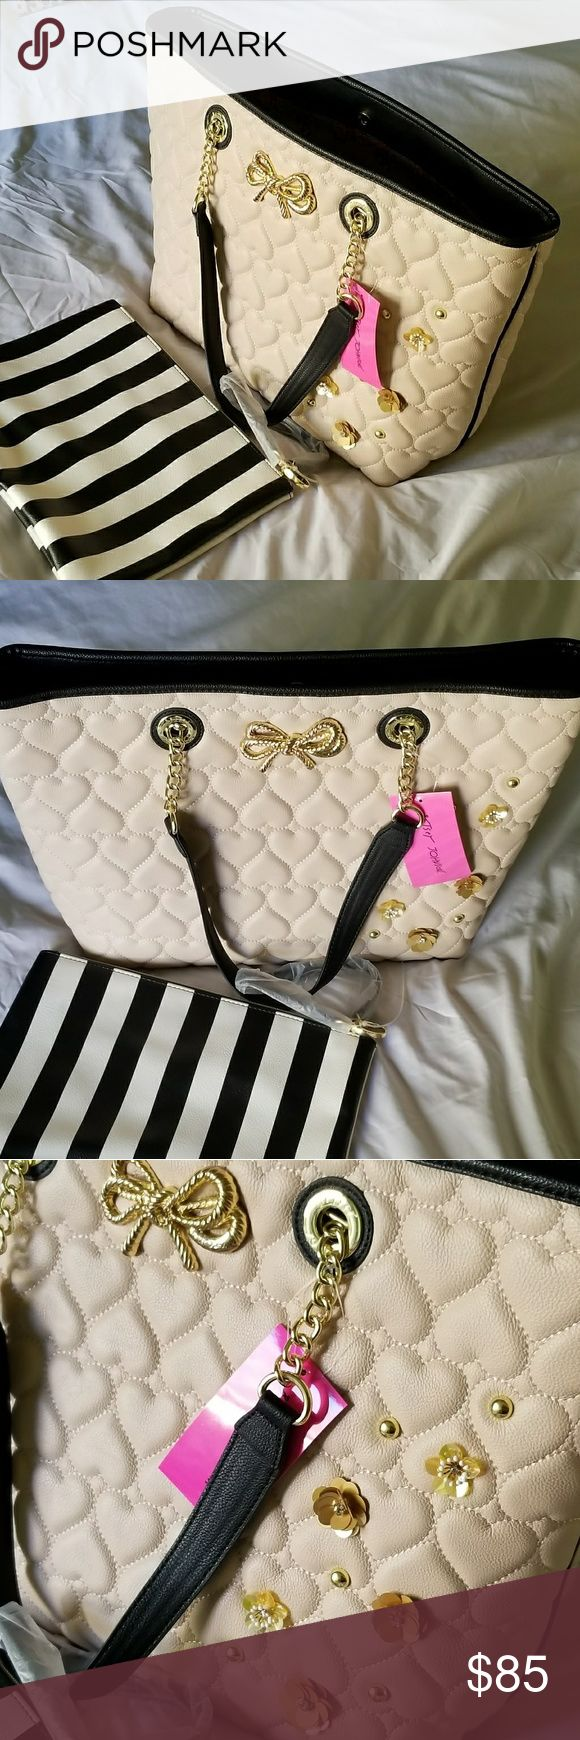 FREE SHIPPING Betsey Johnson Tote NWT Betsey Johnson Tote with make up bag. Cream in color, gold and black detail.  FREE SHIPPING ON ORDERS OVER $50 Betsey Johnson Bags Totes